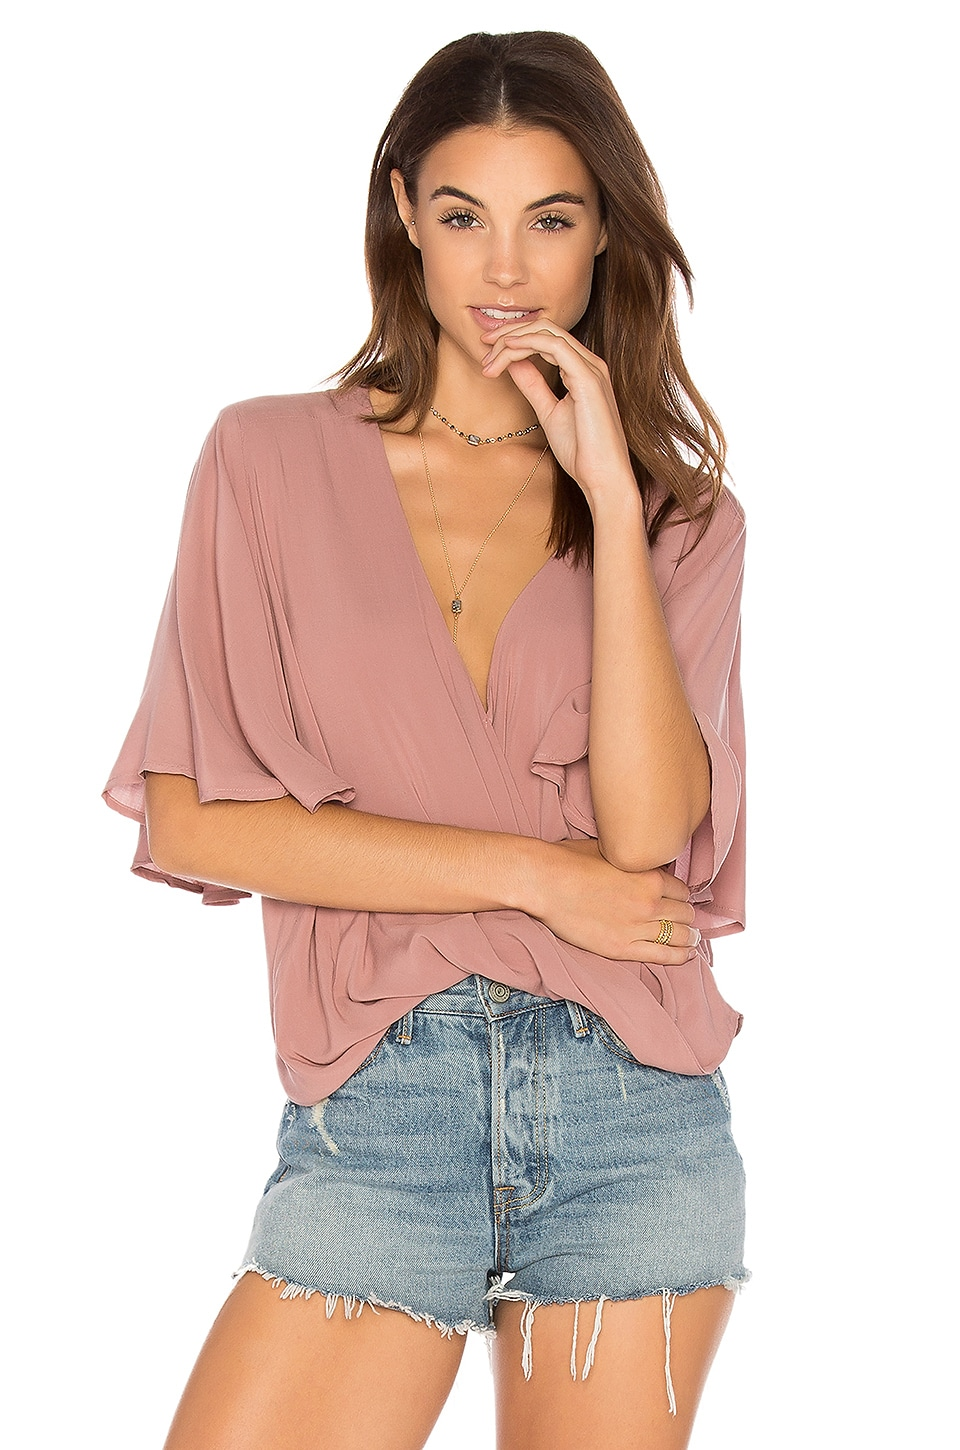 Blue Life Waterfall Blouse in Rose Solid